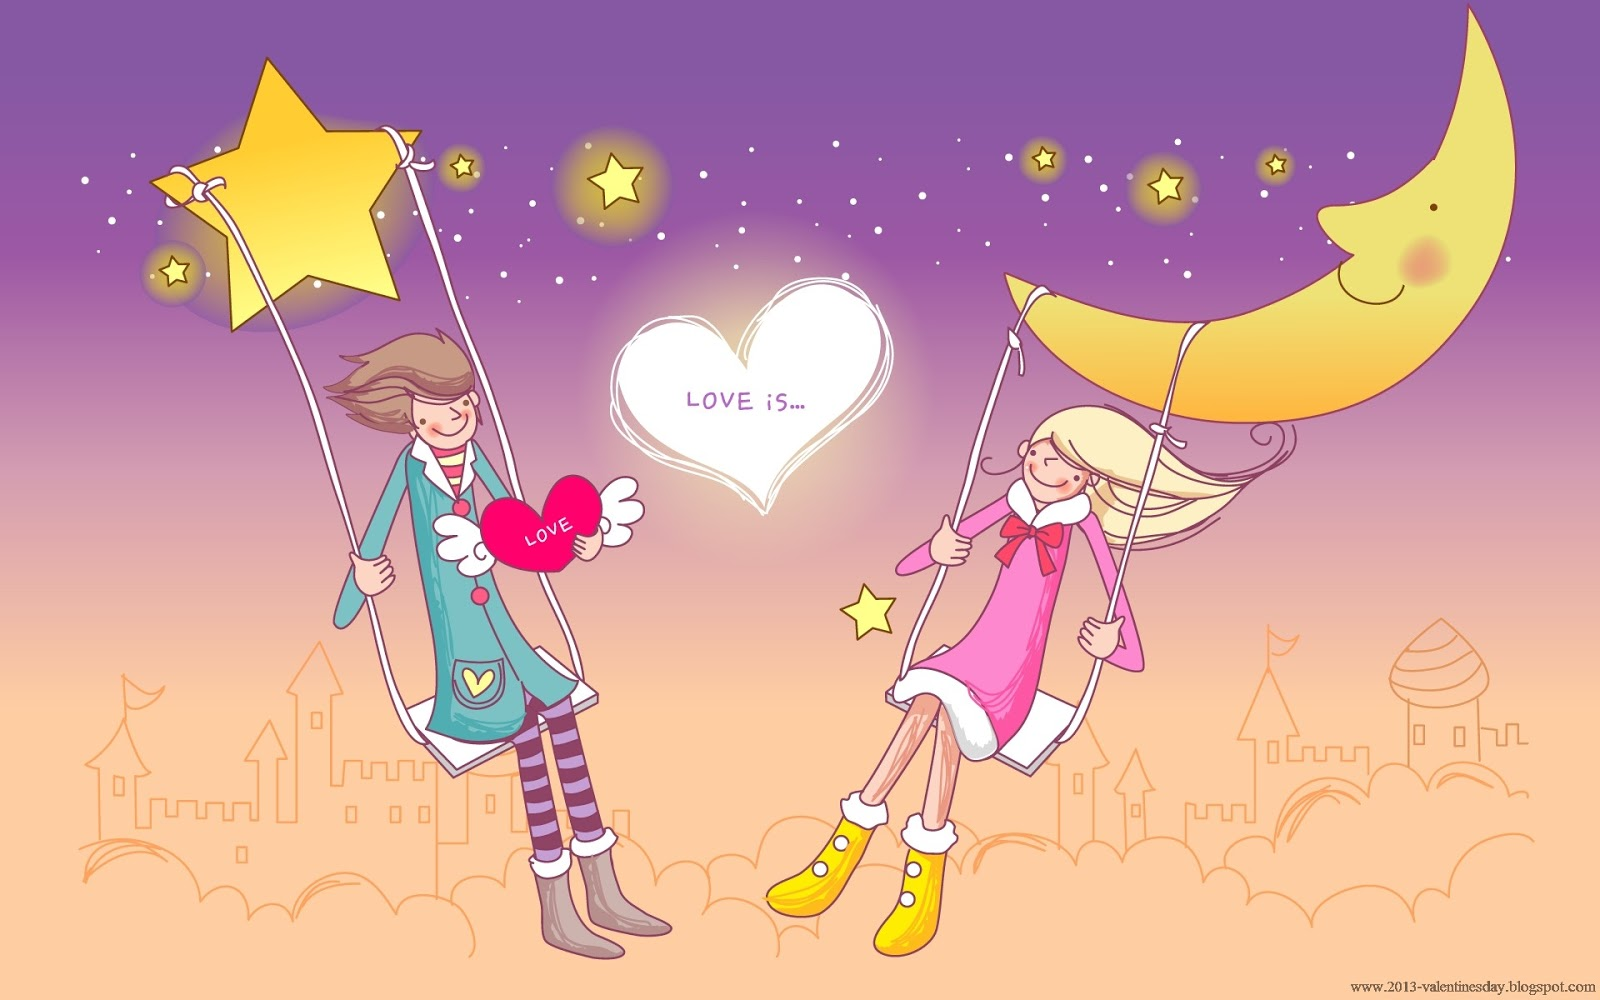 Love Wallpaper cute Hd : cute cartoon couple Love Hd wallpapers for Valentines day